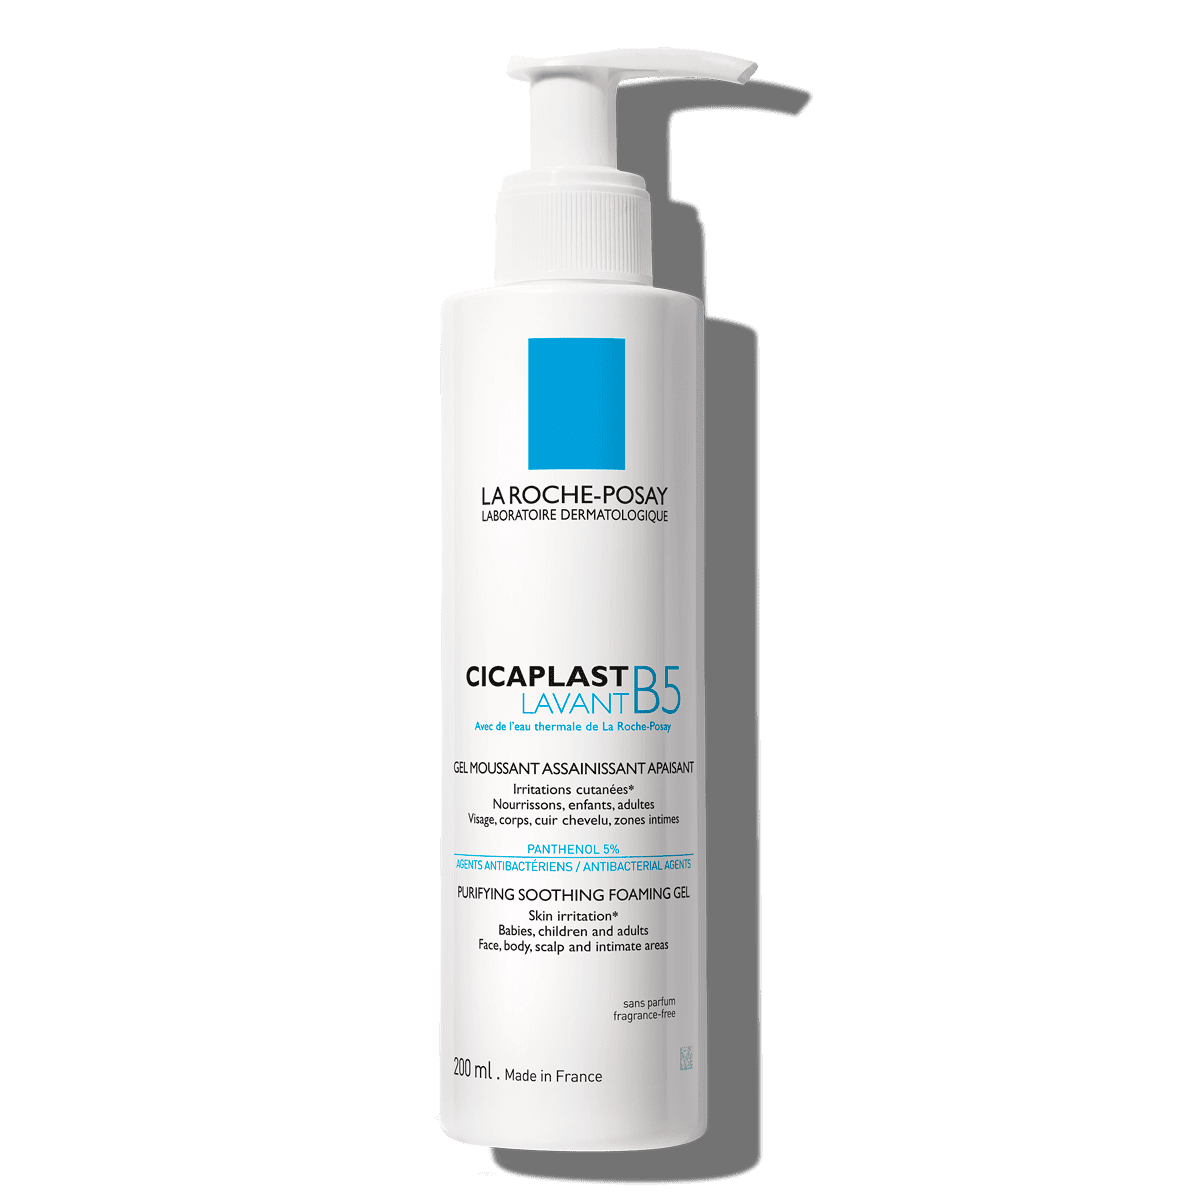 La Roche Posay ProductPage Damaged Cicaplast Lavant B5 200ml 333787554